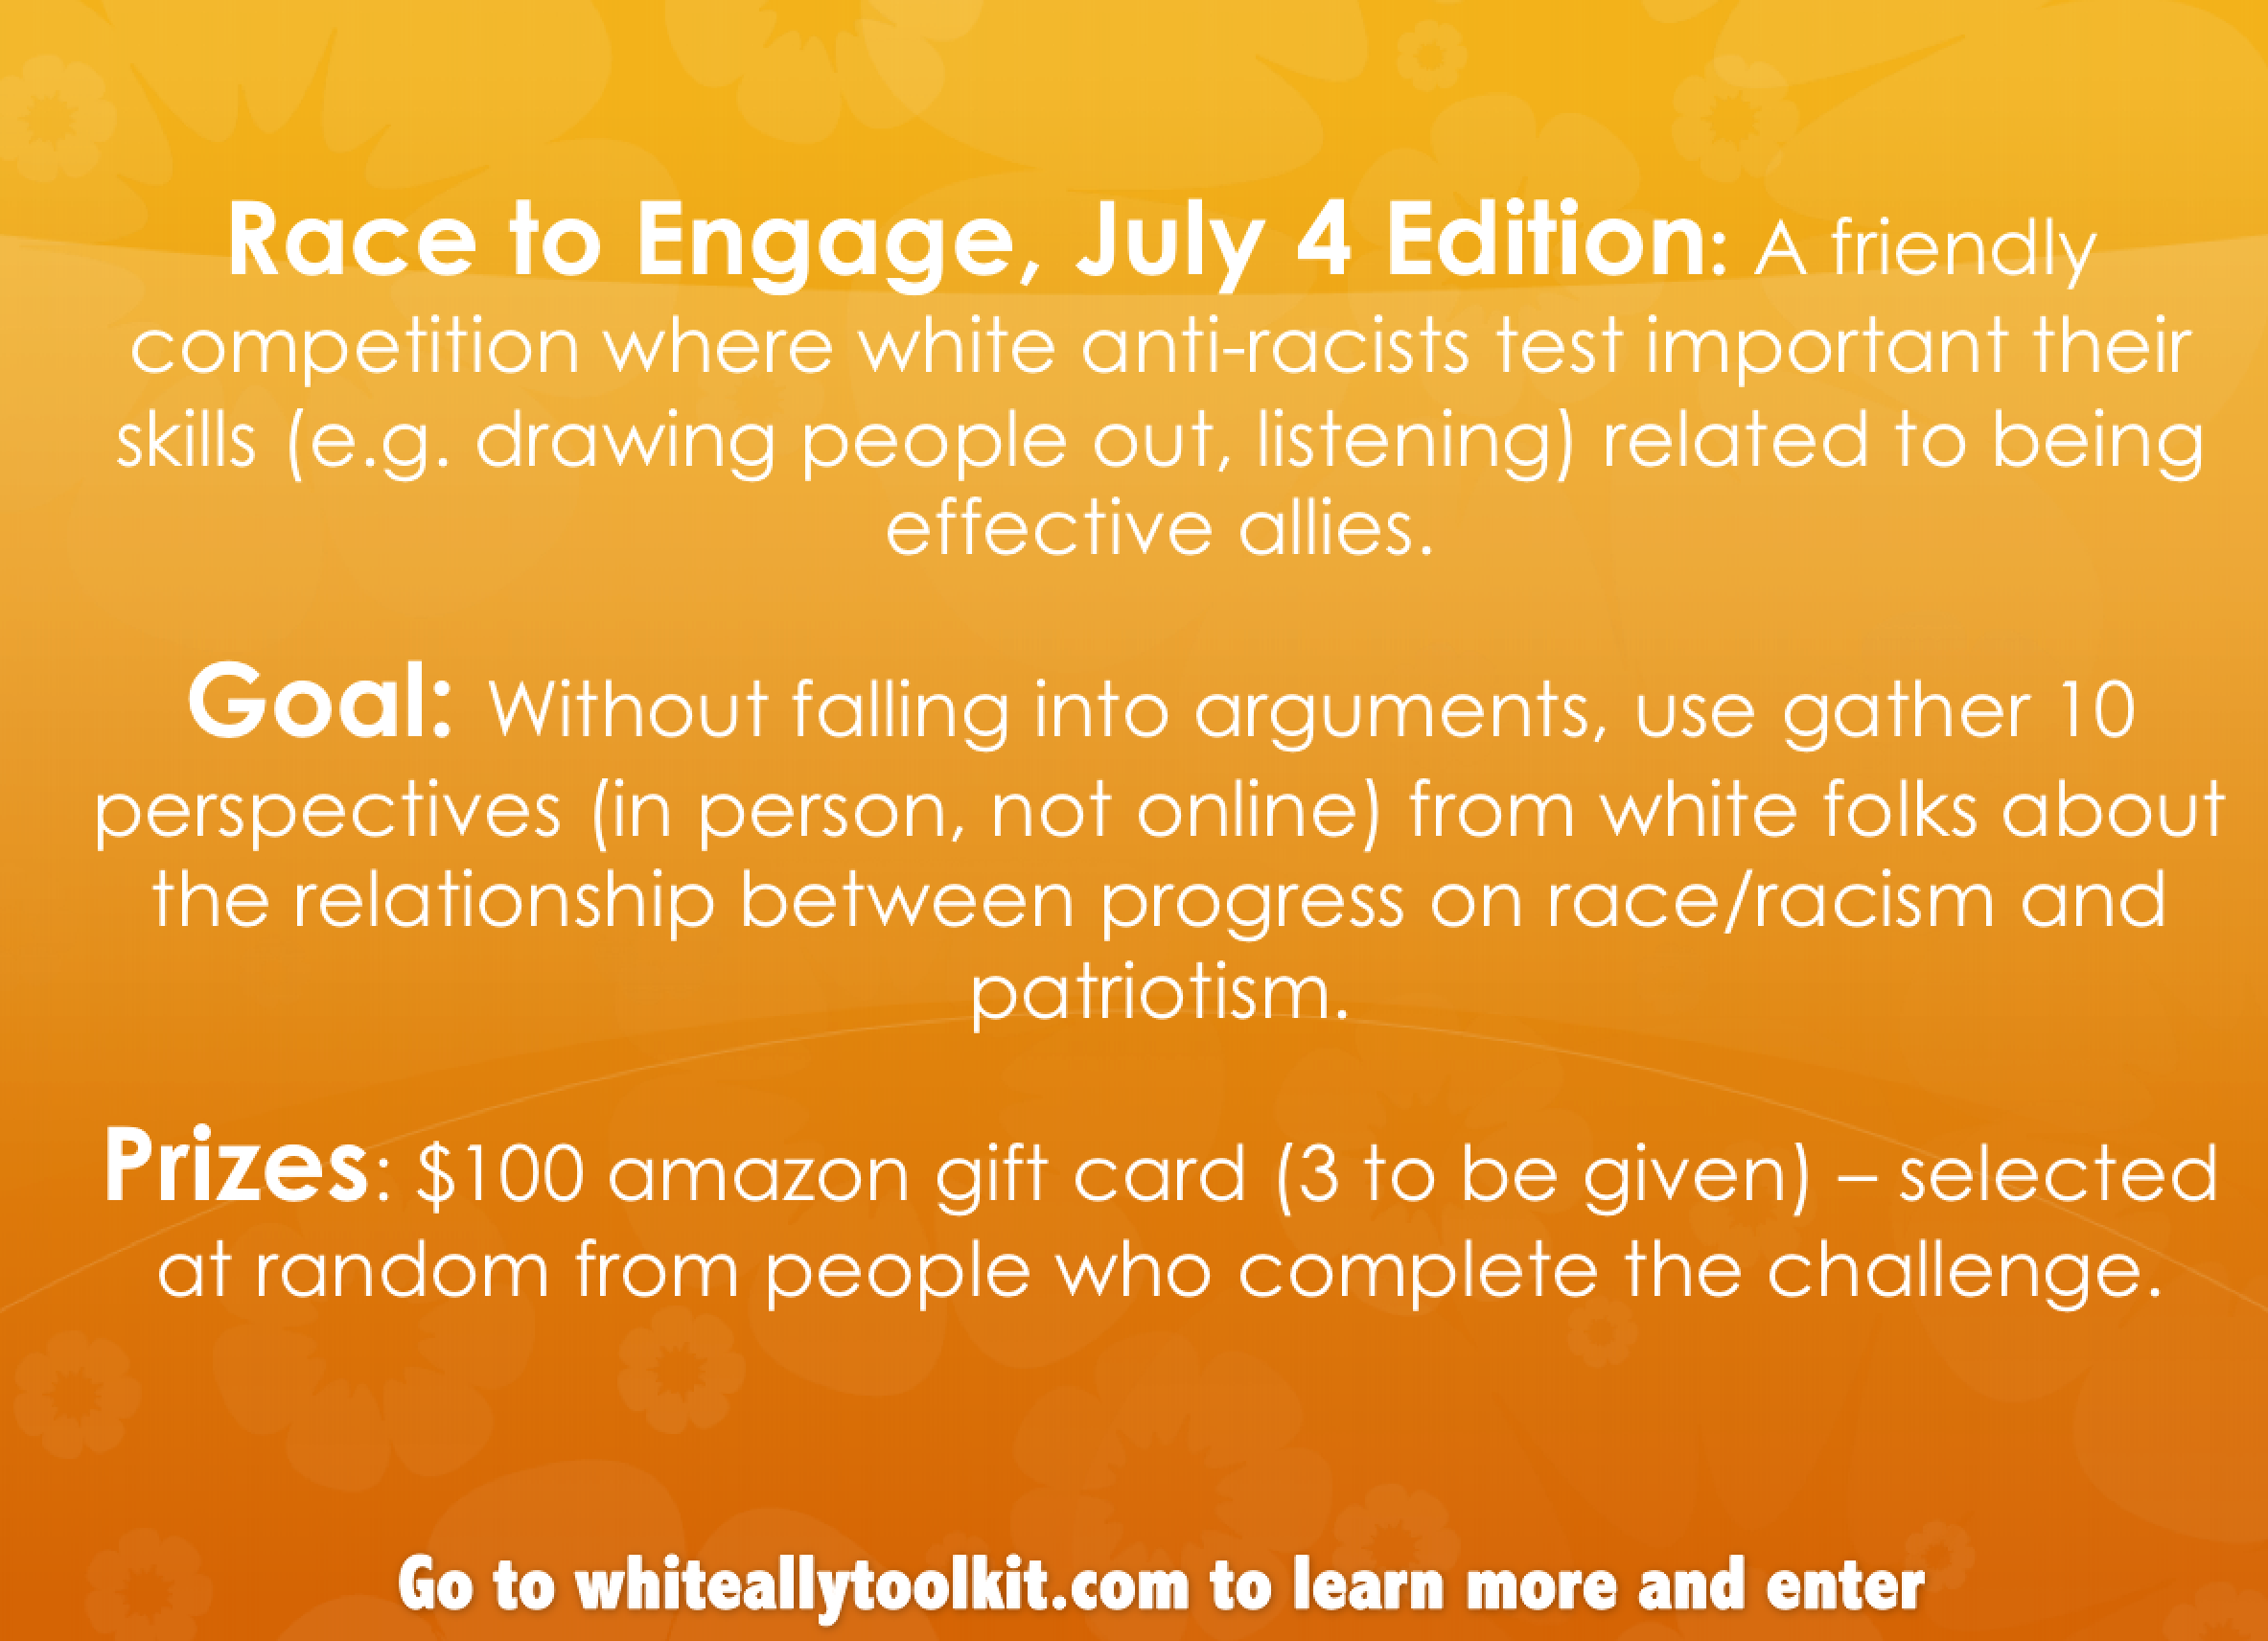 To get more guidance about the Race to Engage Challenge, go to the website landing page.